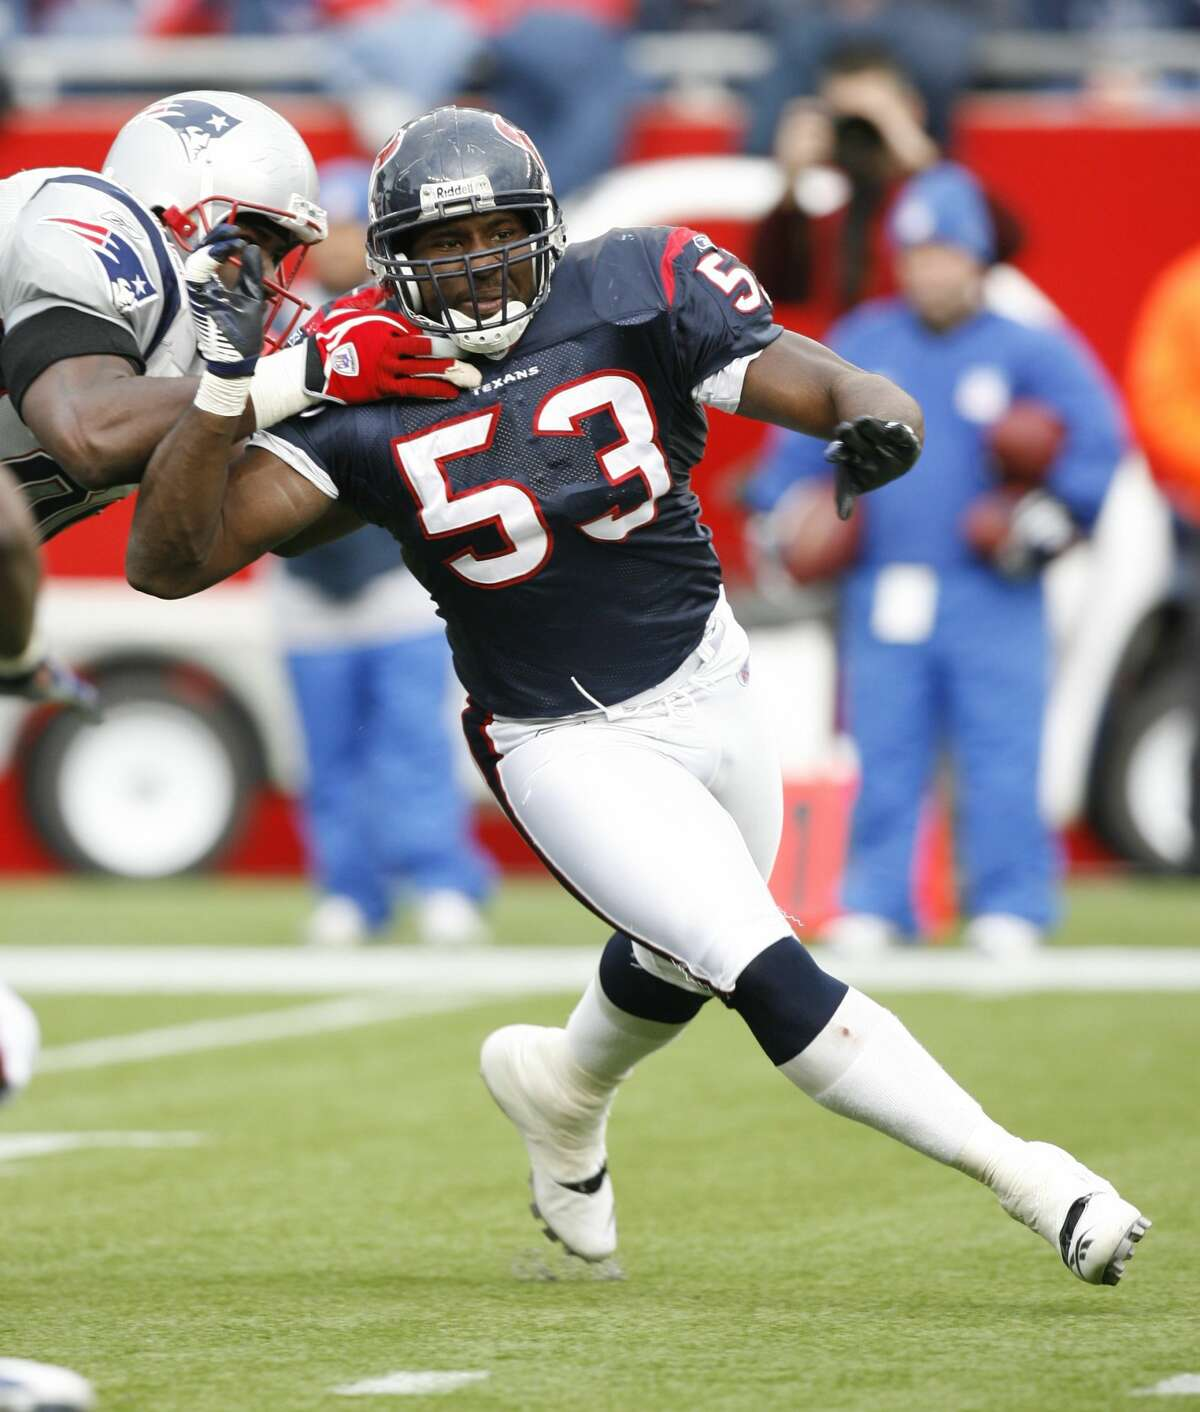 Shantee Orr, linebackerOrr played for the Texans from 2003 to 2007. He also played for the Jaguars and Browns.